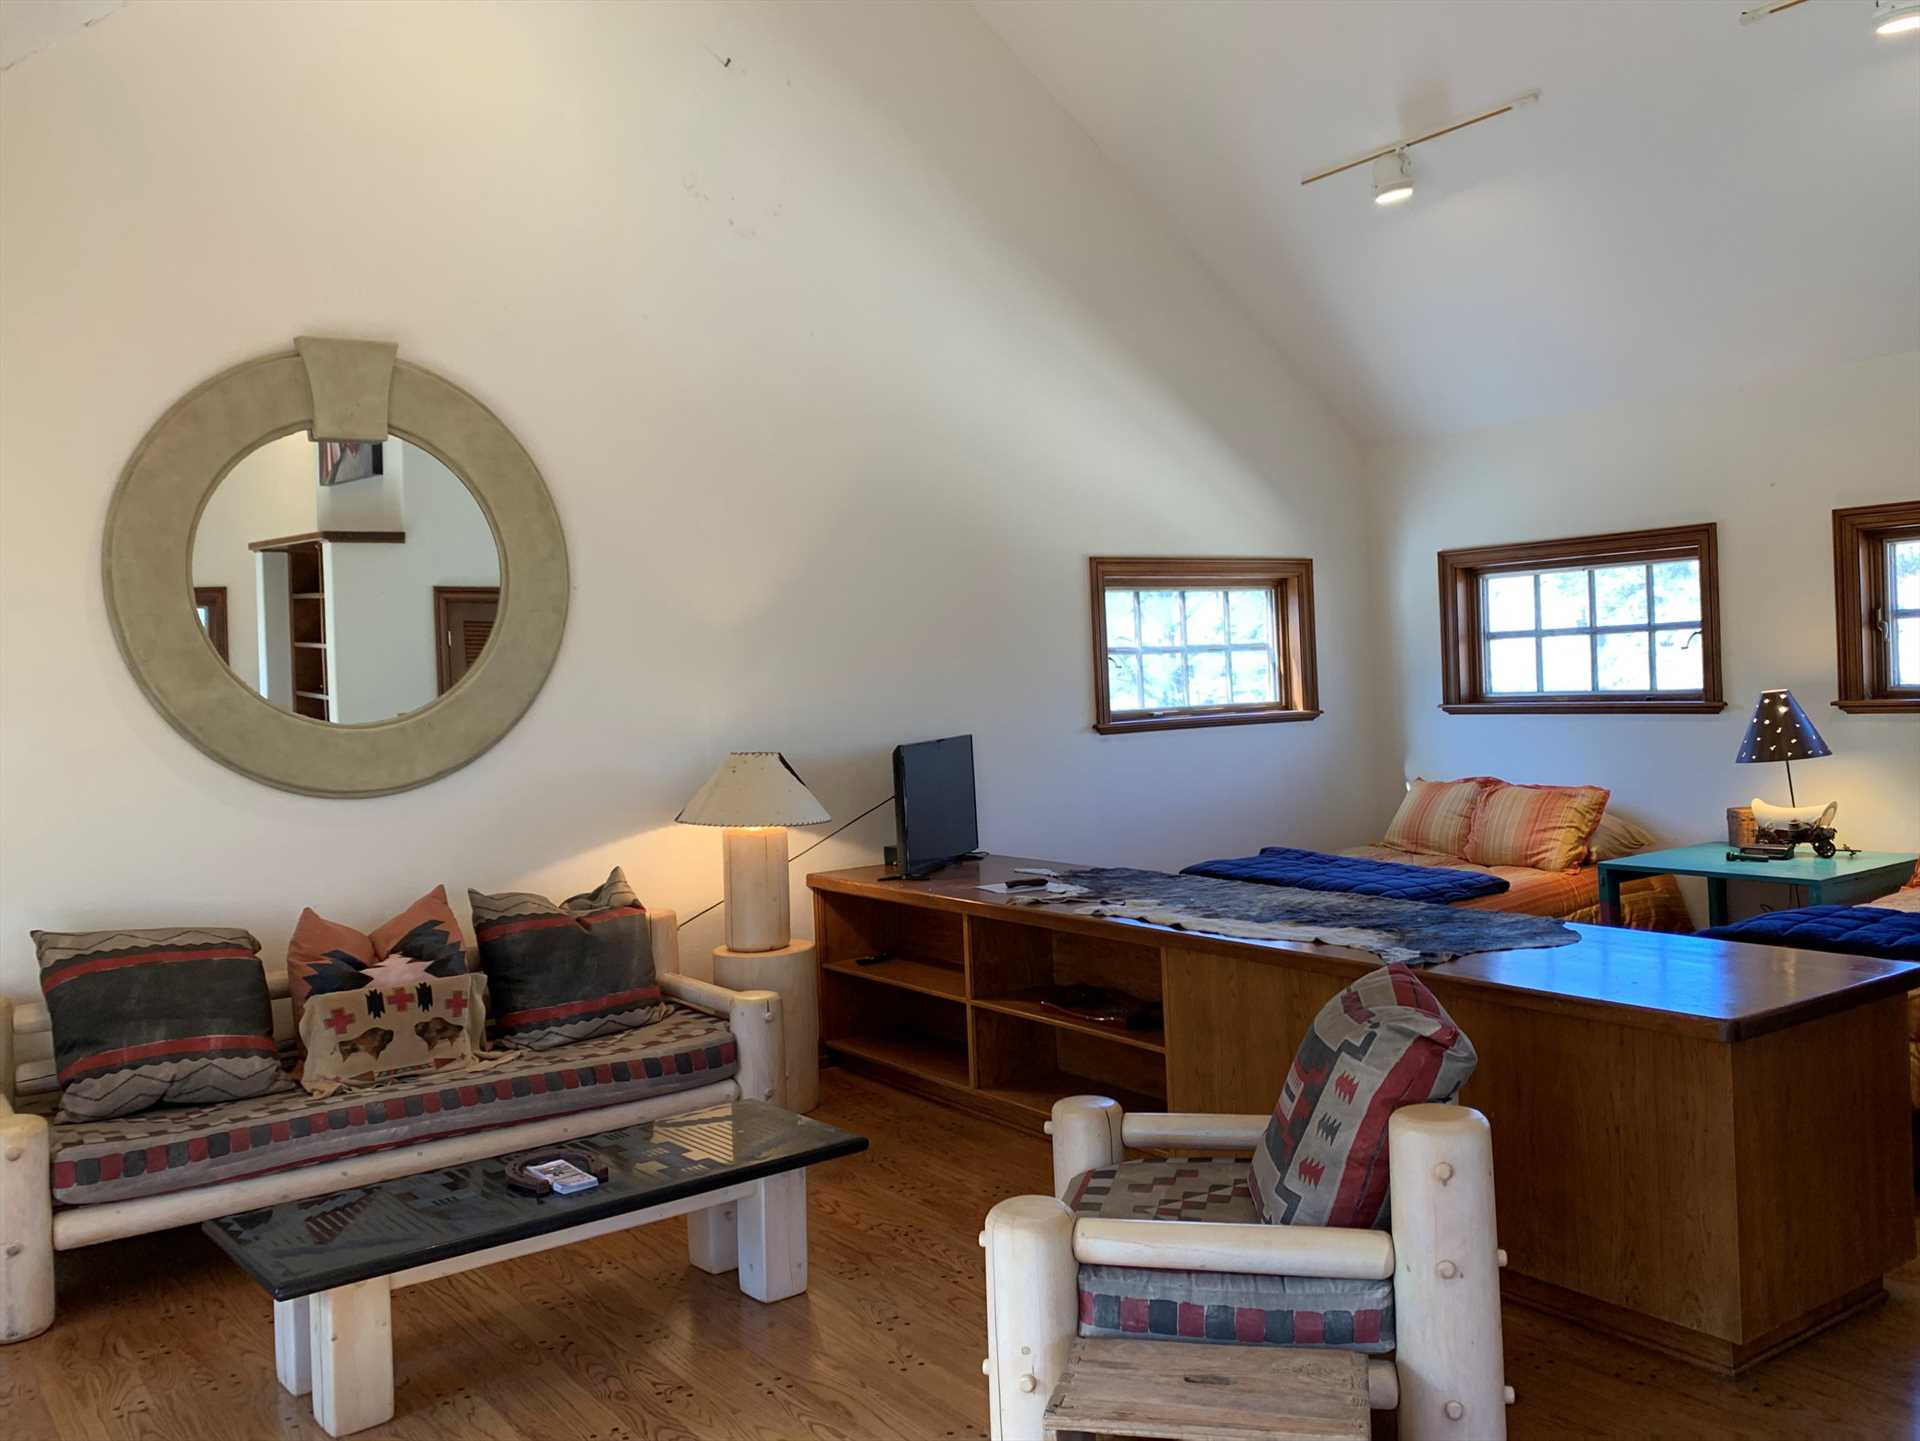 Two queen beds and a double-sized futon-all with soft and clean linens included-provide sleeping space for up to five more guests in the Casita.